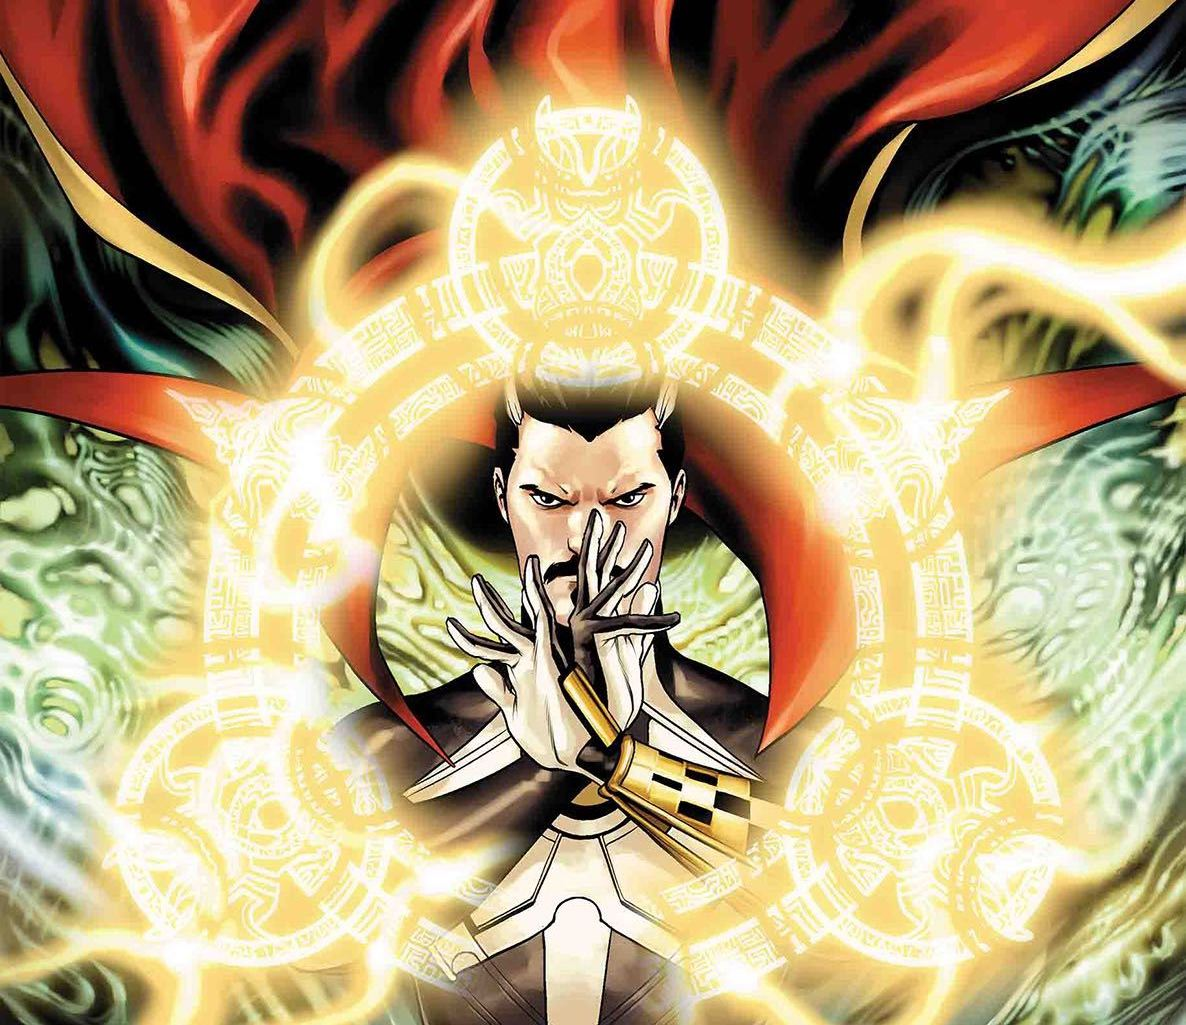 'Doctor Strange' #10 review: The 400th milestone issue